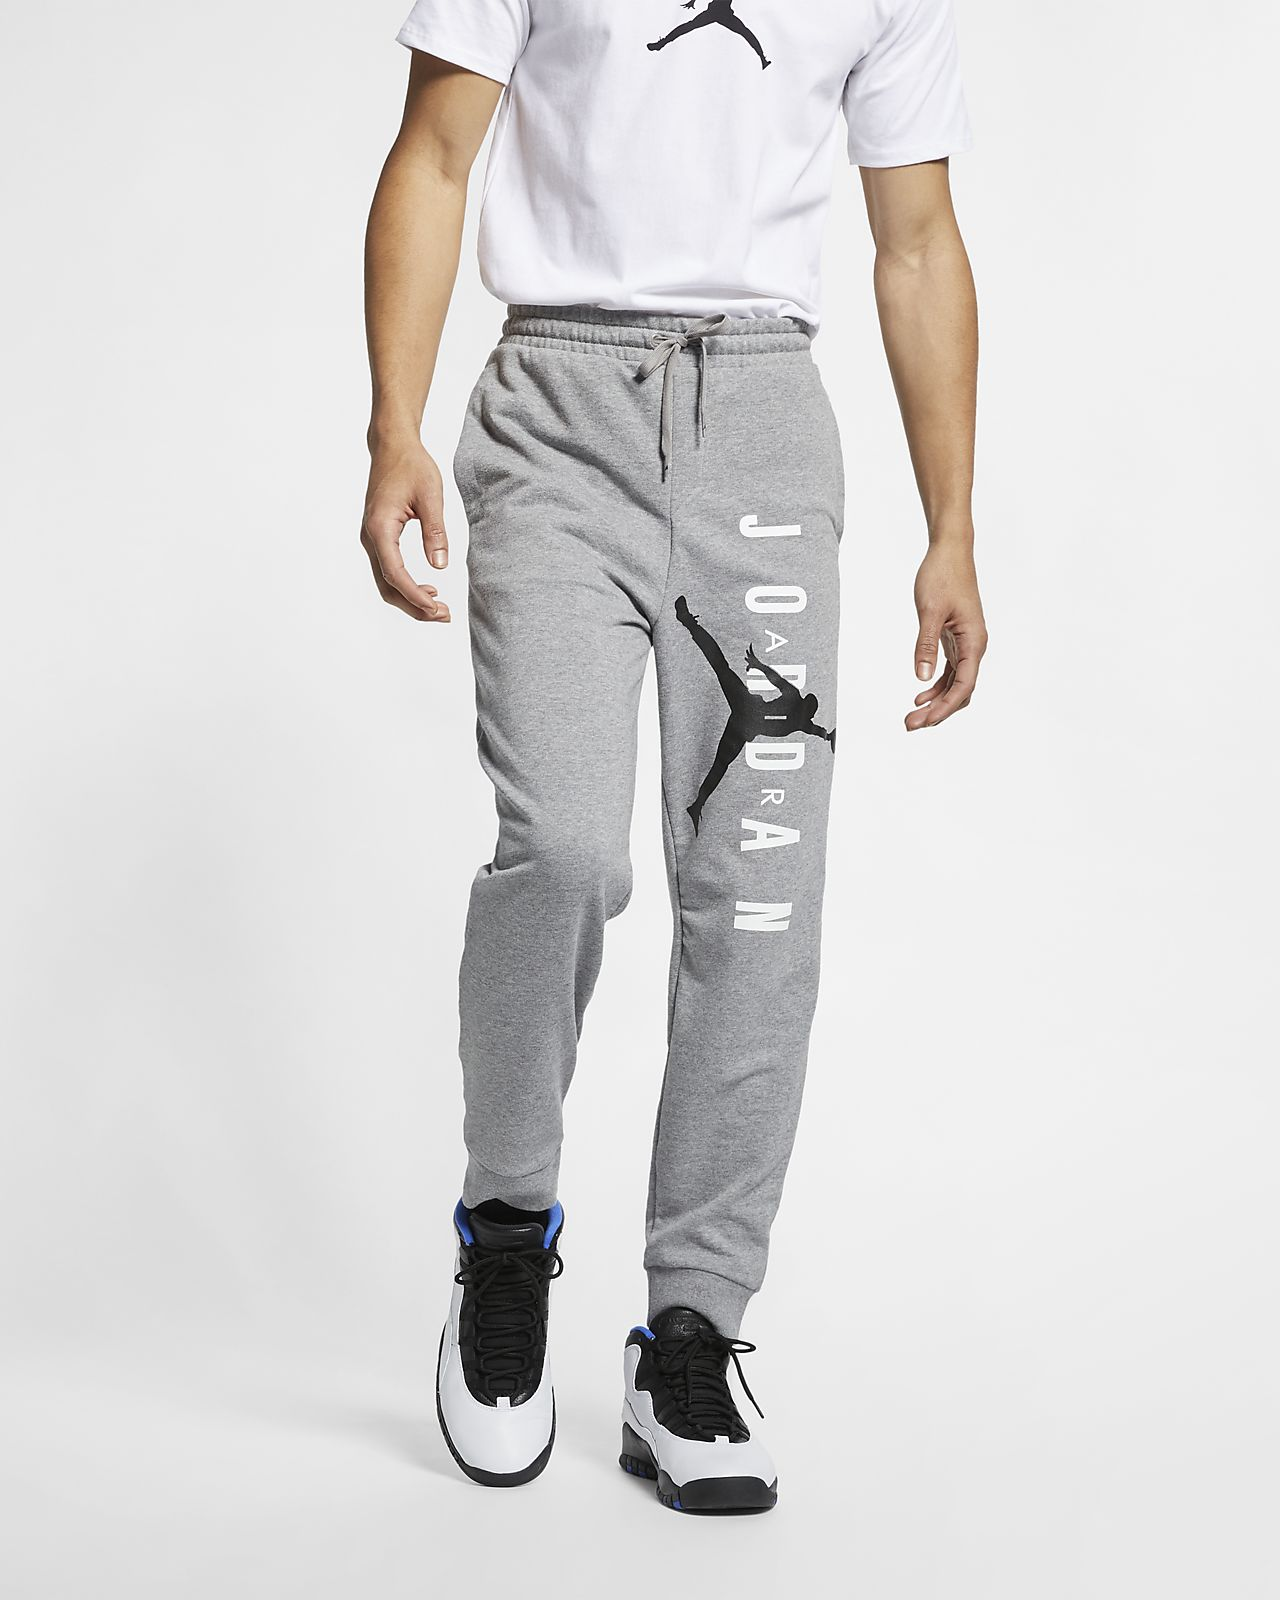 399e5854f410 Jordan Jumpman Air Men s Lightweight Fleece Trousers. Nike.com CA